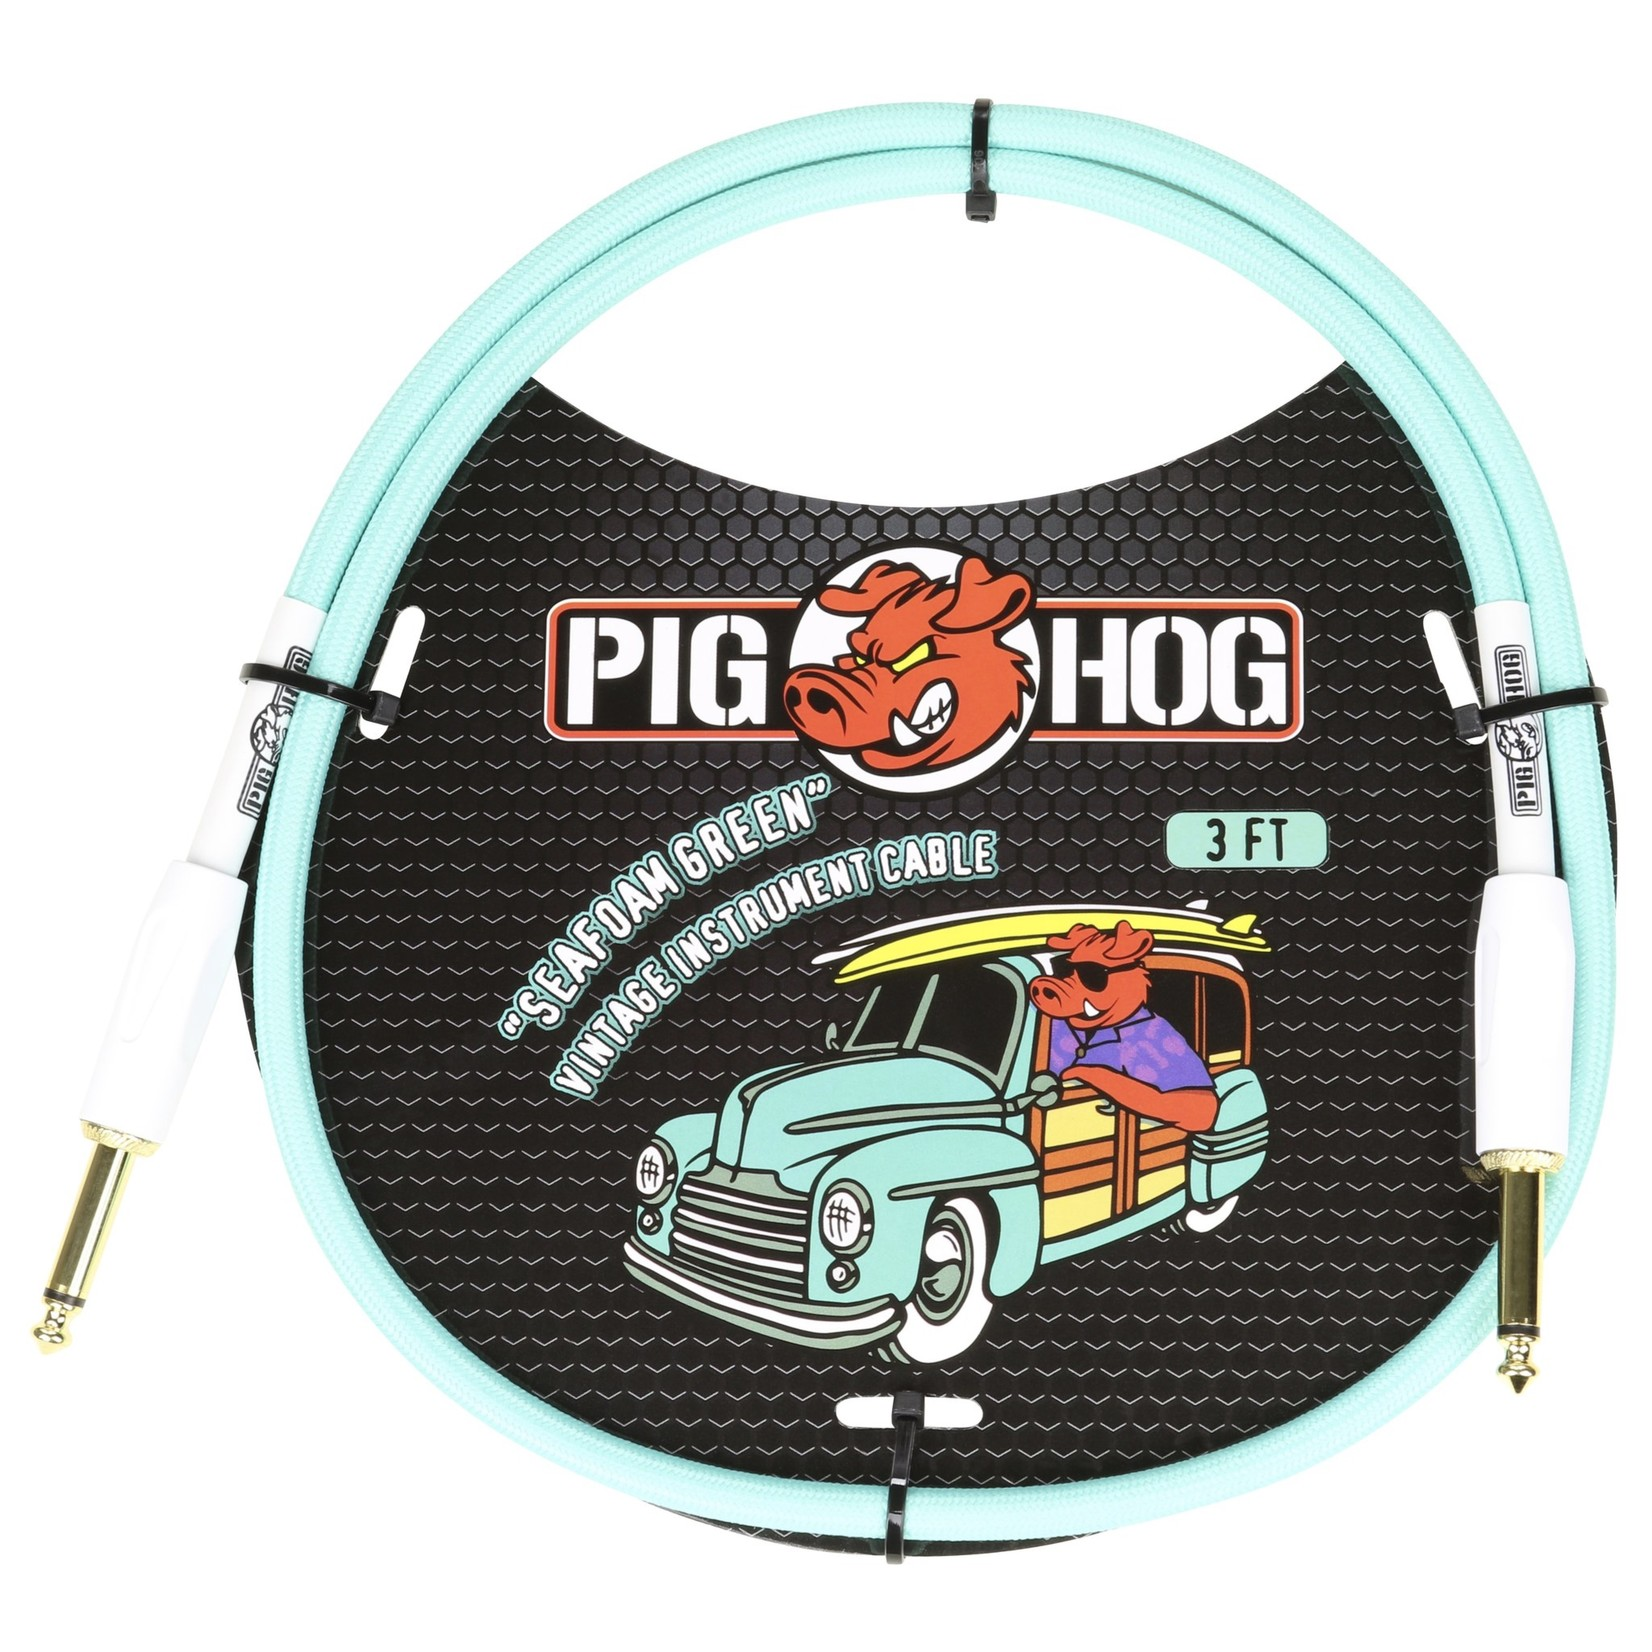 """Pig Hog Pig Hog Vintage Woven Patch Cable, 3-Foot, 7mm, 1/4"""" Straight Connectors, Seafoam Green (PCH3SG)"""